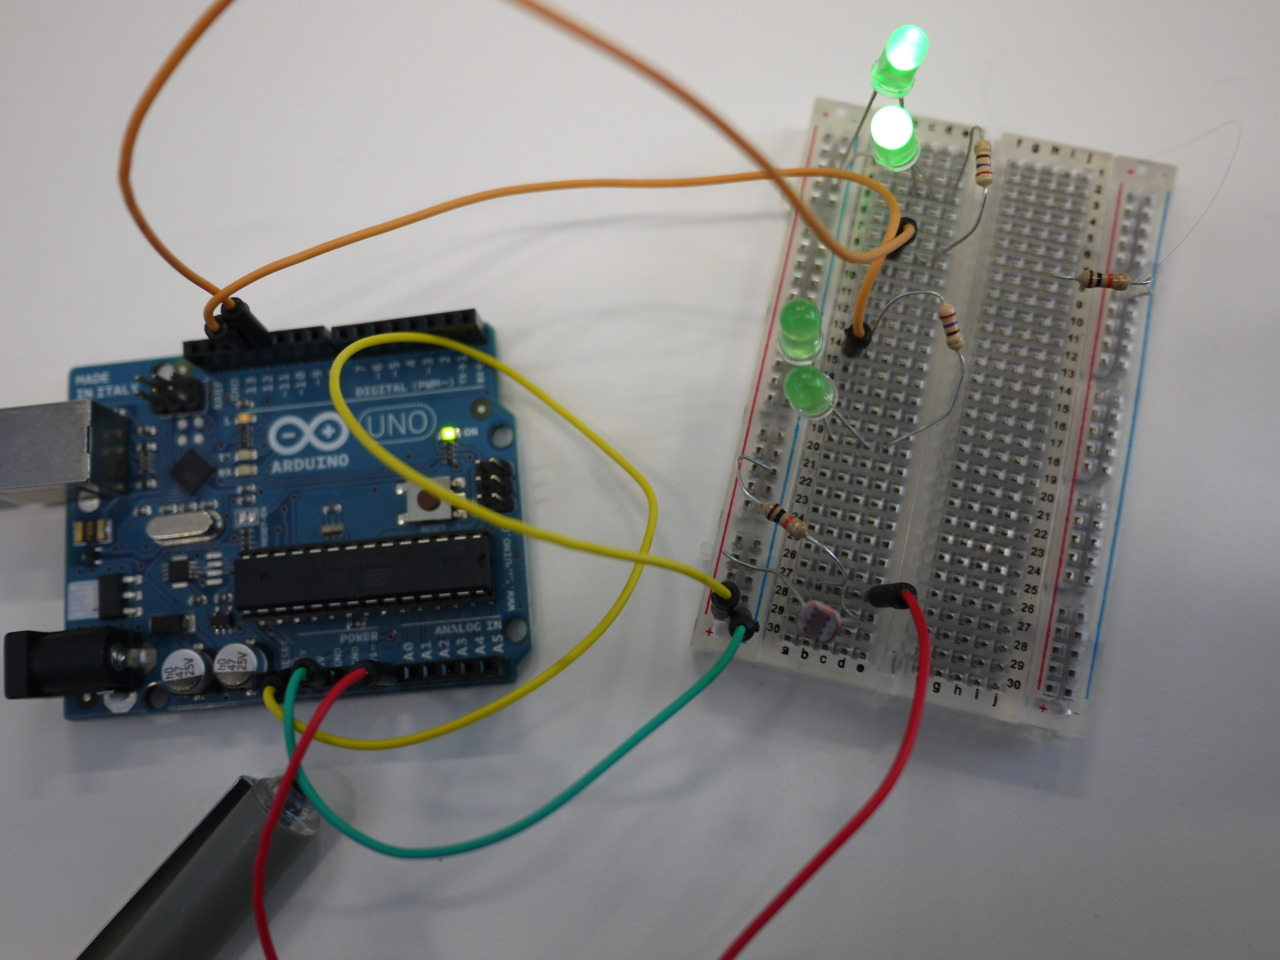 Playing with Arduino. Mad Lab workshop, twitter related code and LEDs controlled by light sensors. I find listening to some palatable Hip-Hop helps me get to grips with this Tom Foolery AKA Jiggery Pokery AKA Hocus Pocus AKA Innovative Technology. Just saying.